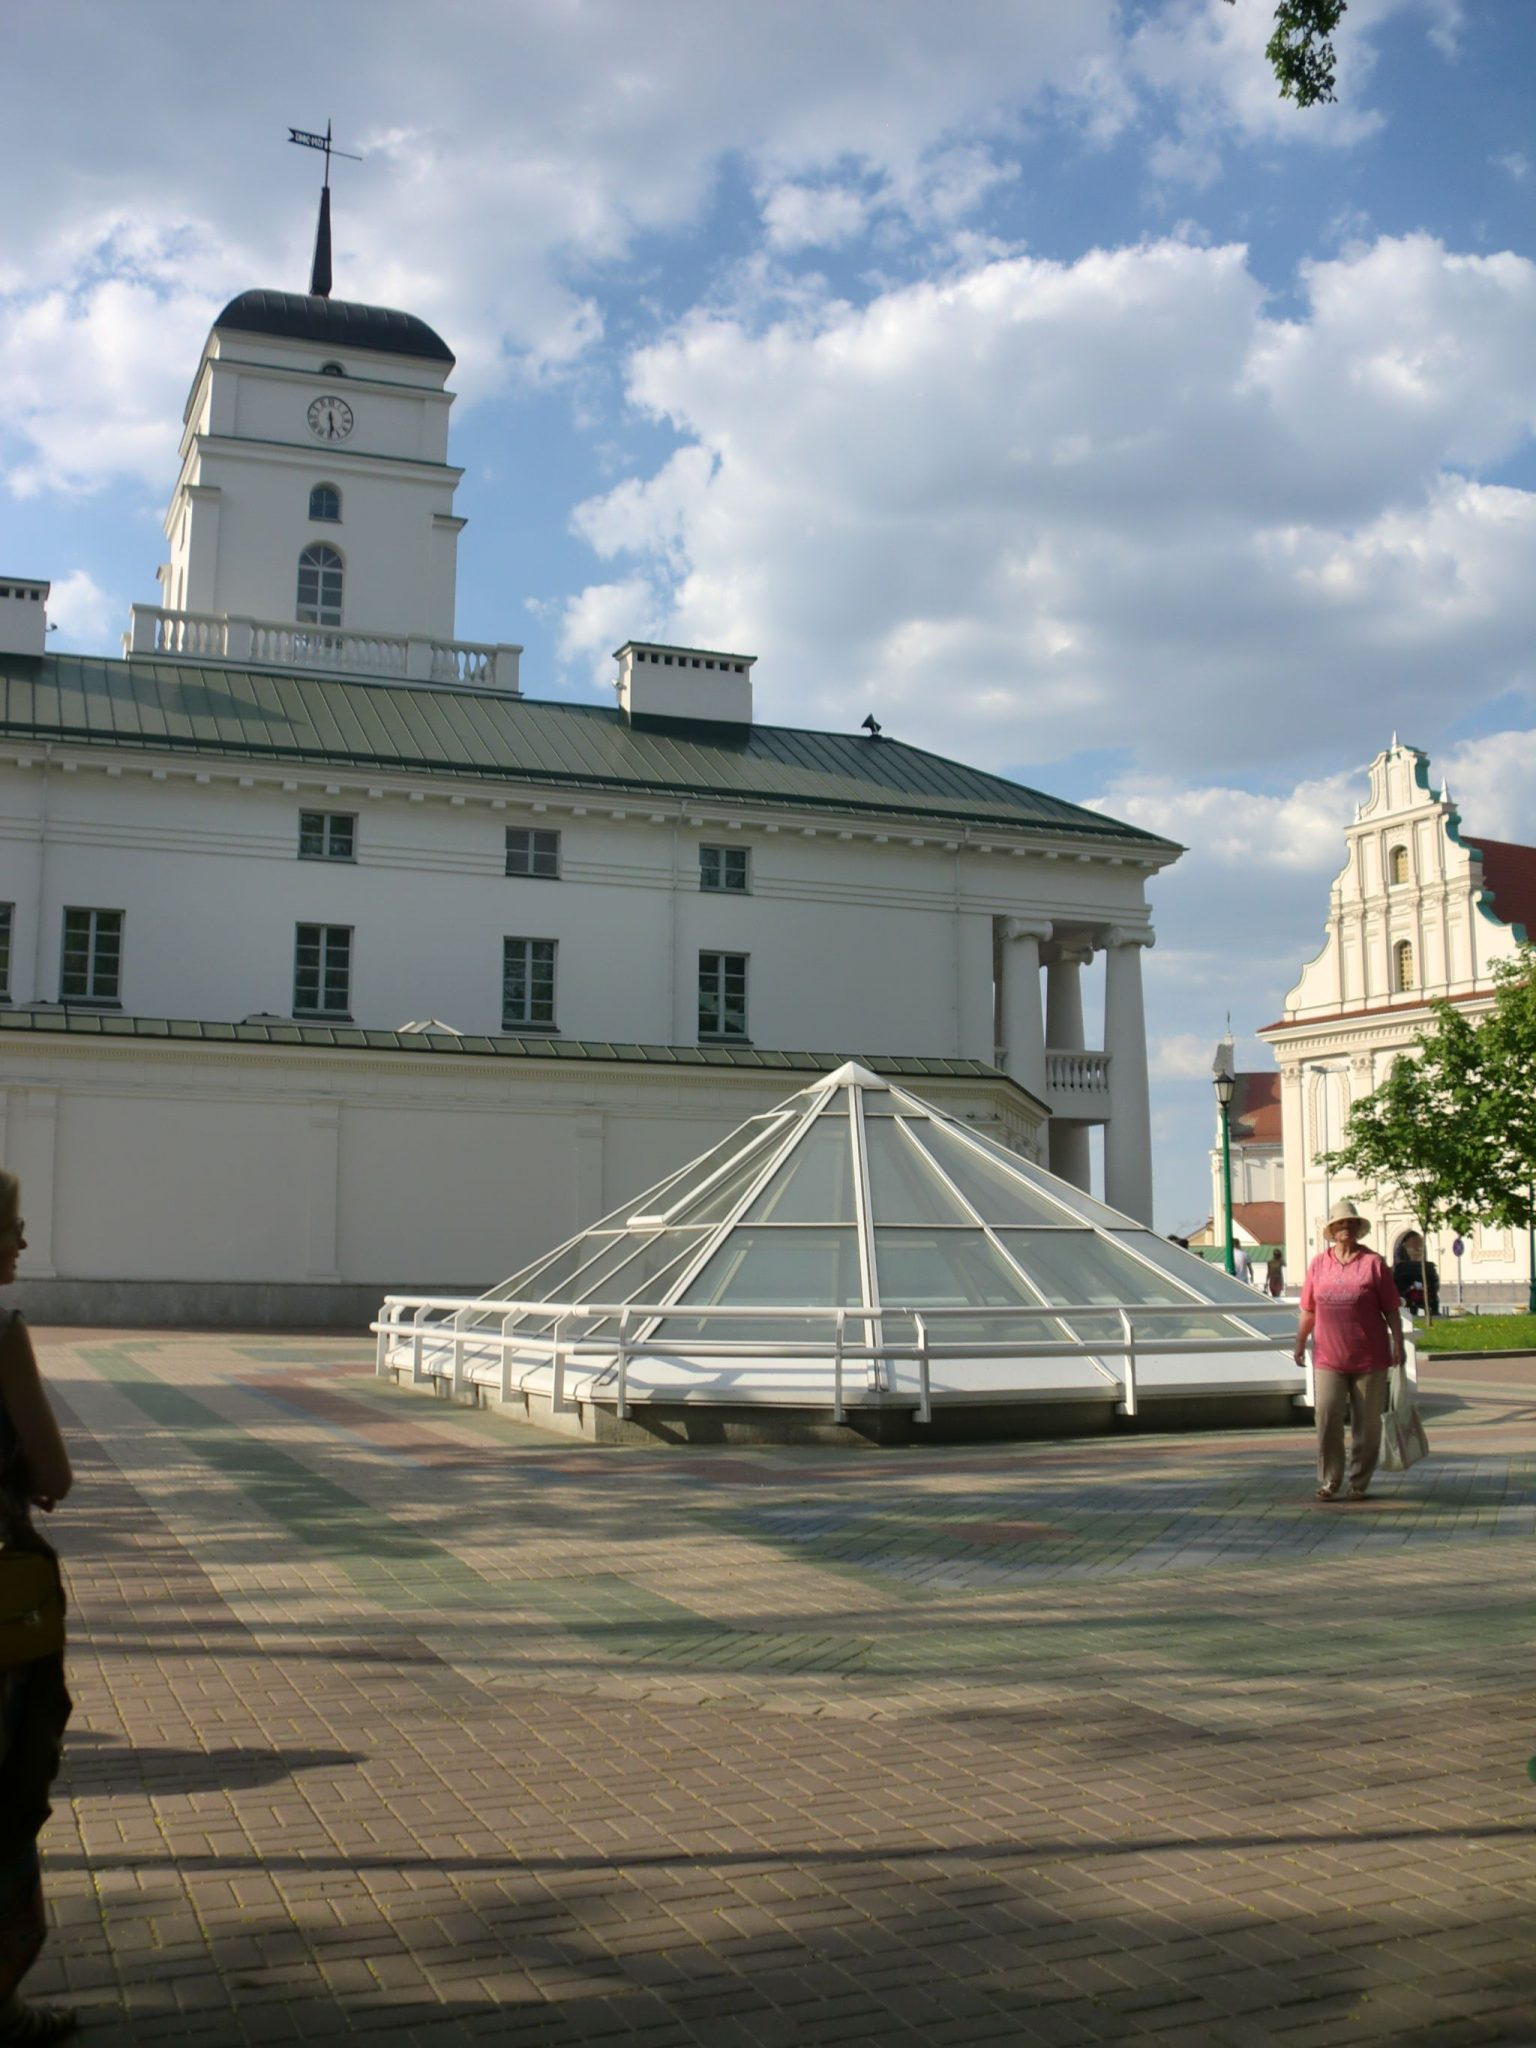 Minsk old town 1 - Minsk, 1 amazing city you have to see